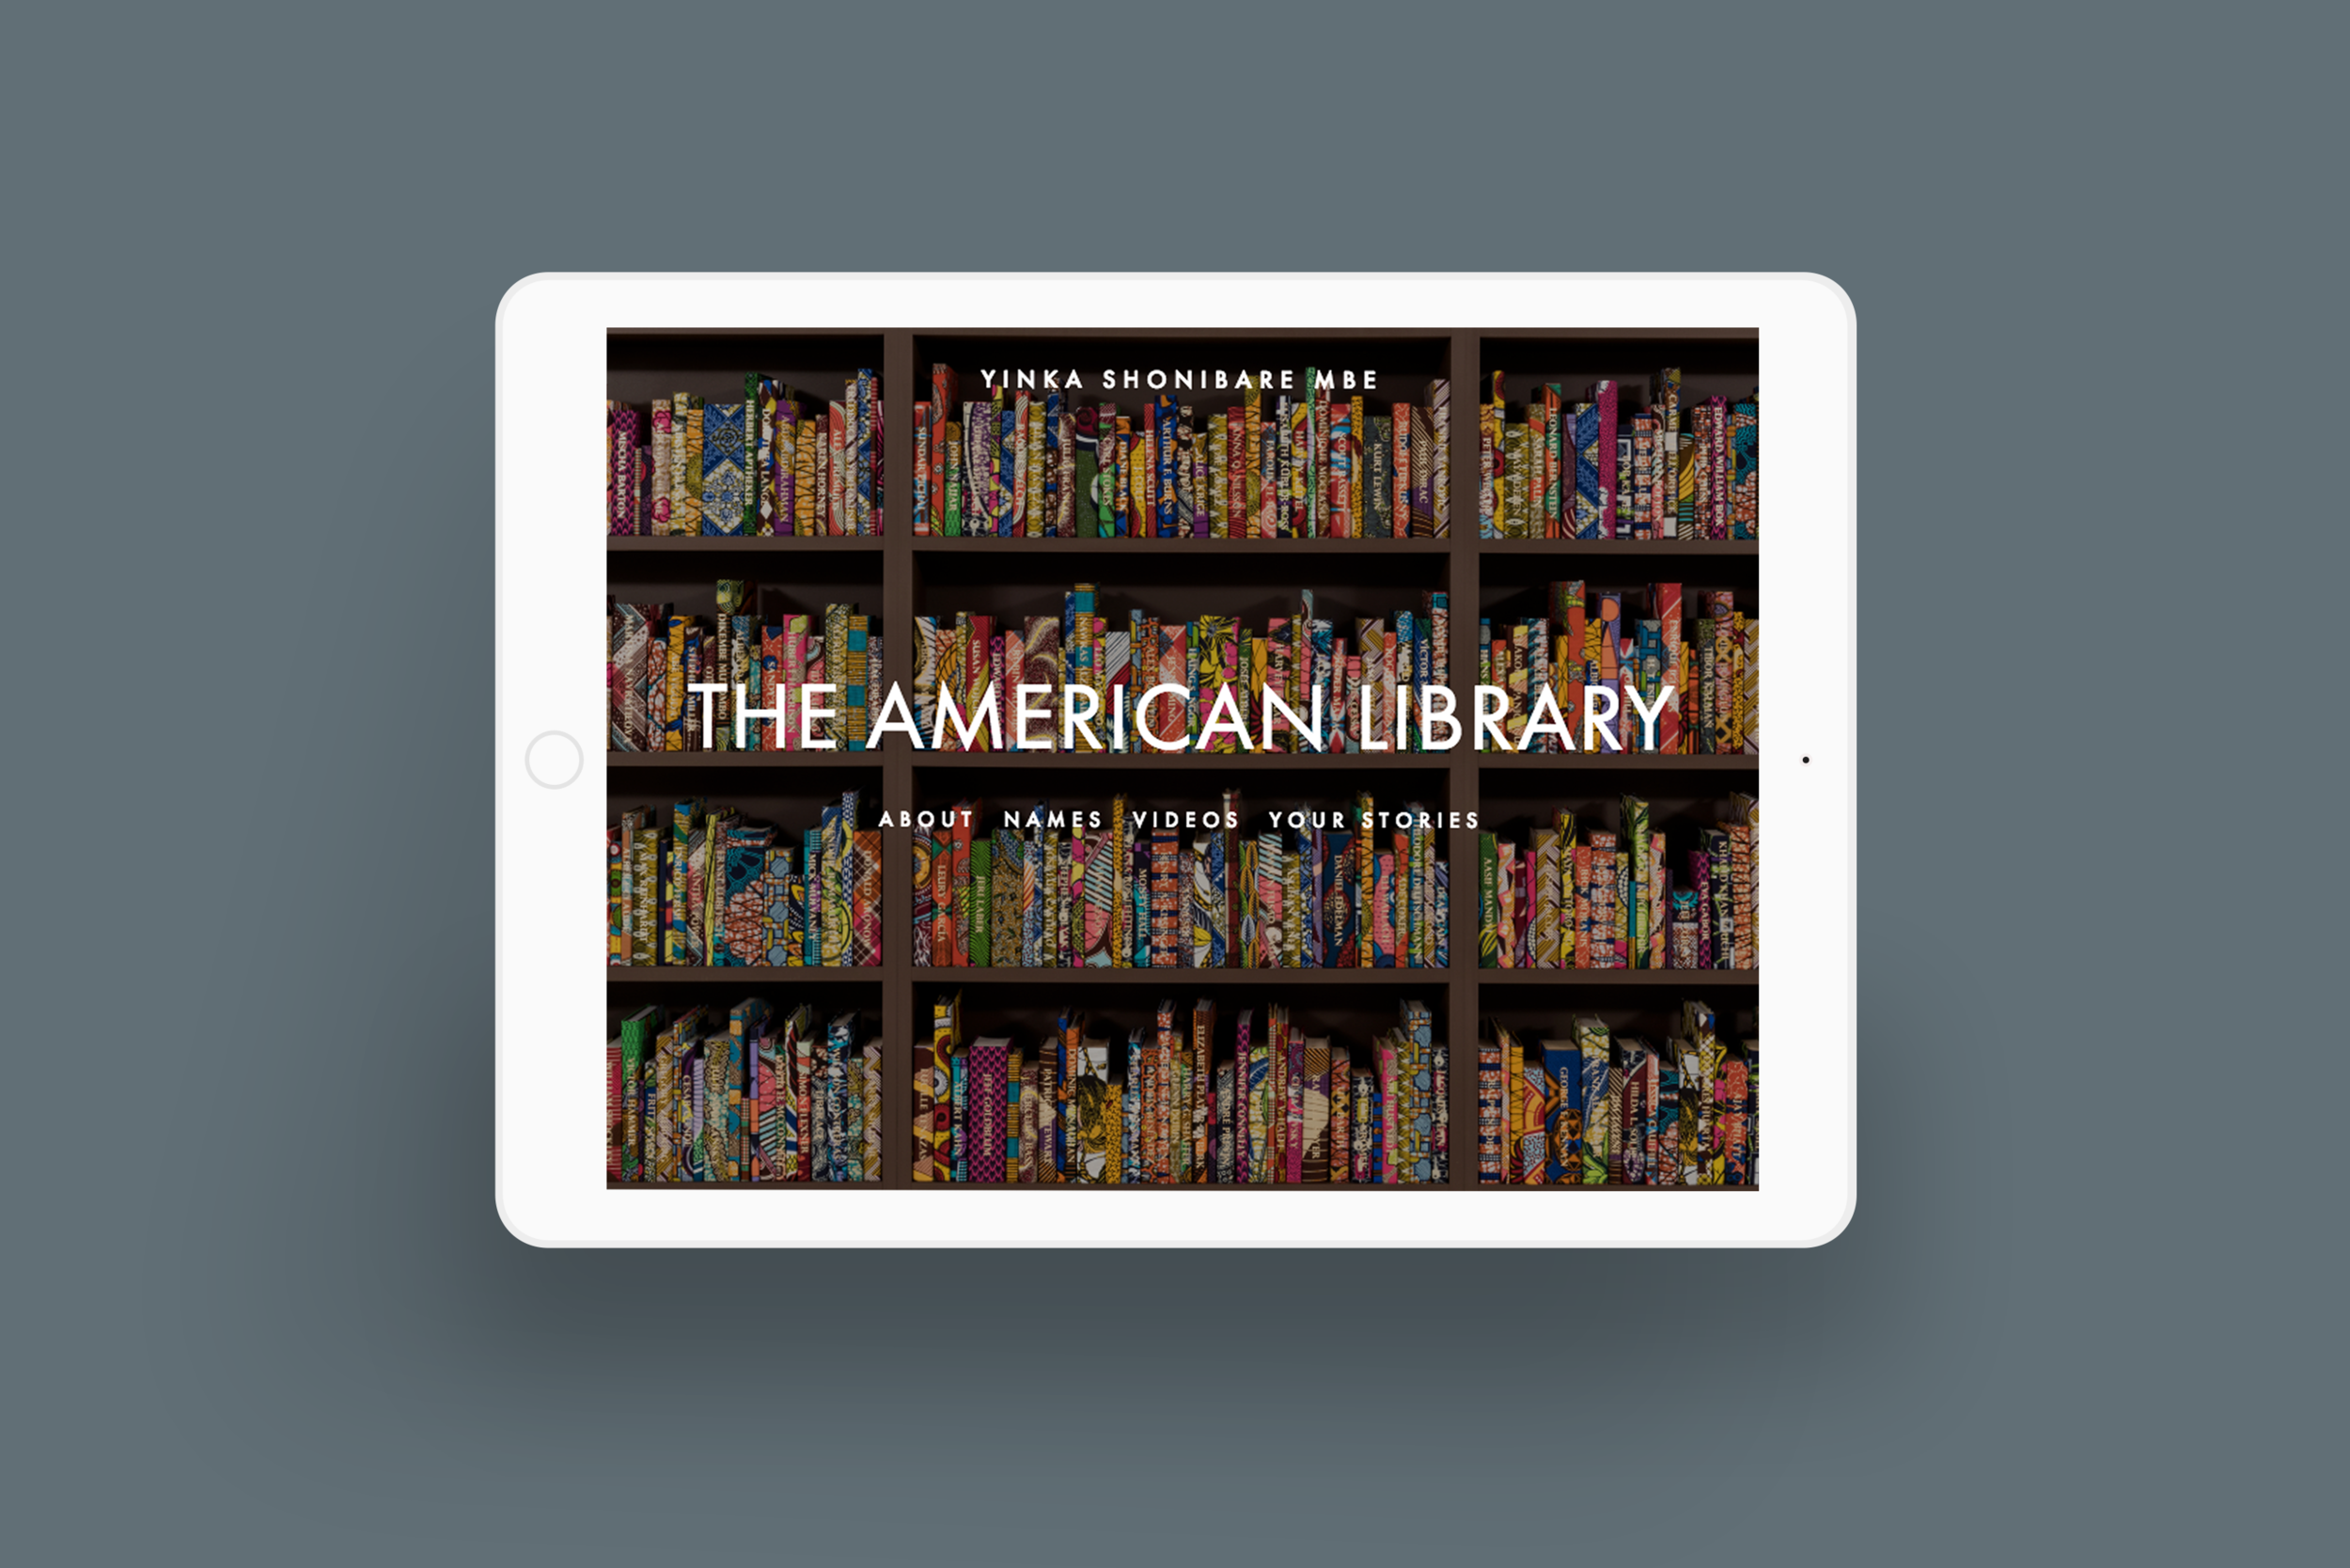 bgsd yinka shonibare the american library installation ipad.png